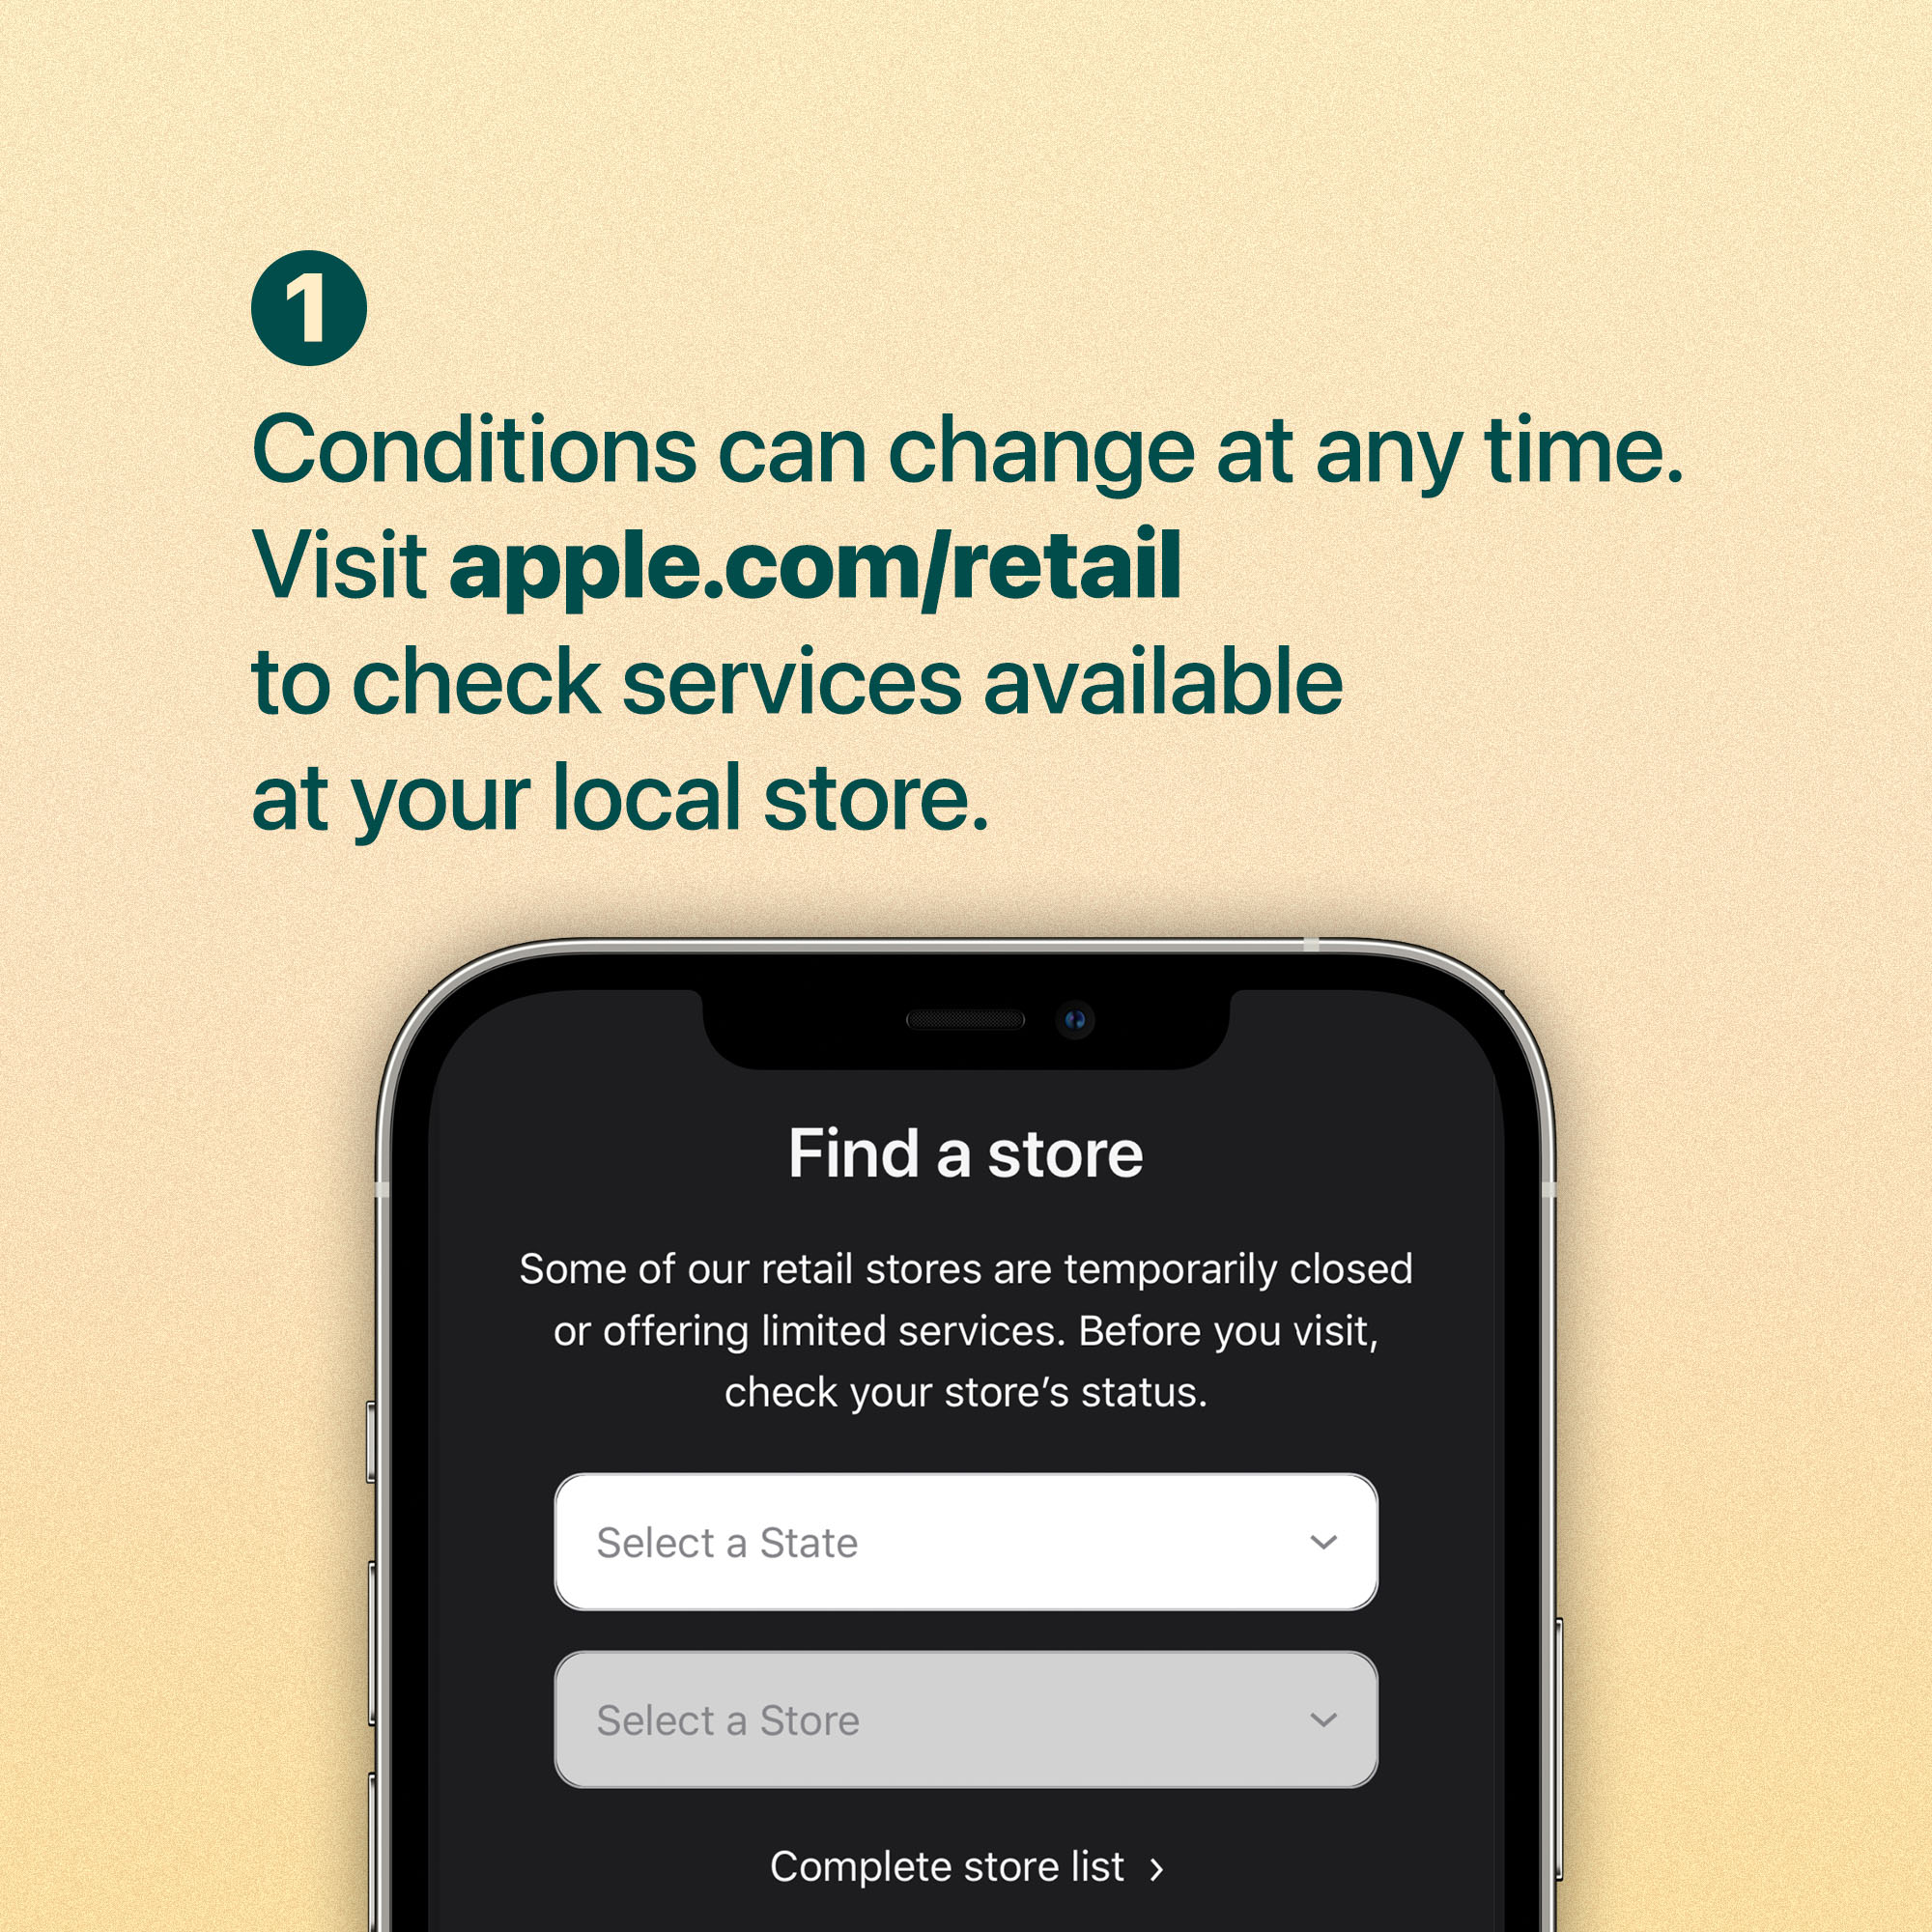 Conditions can change at any time. Visit apple.com/retail to check services available at your local store.